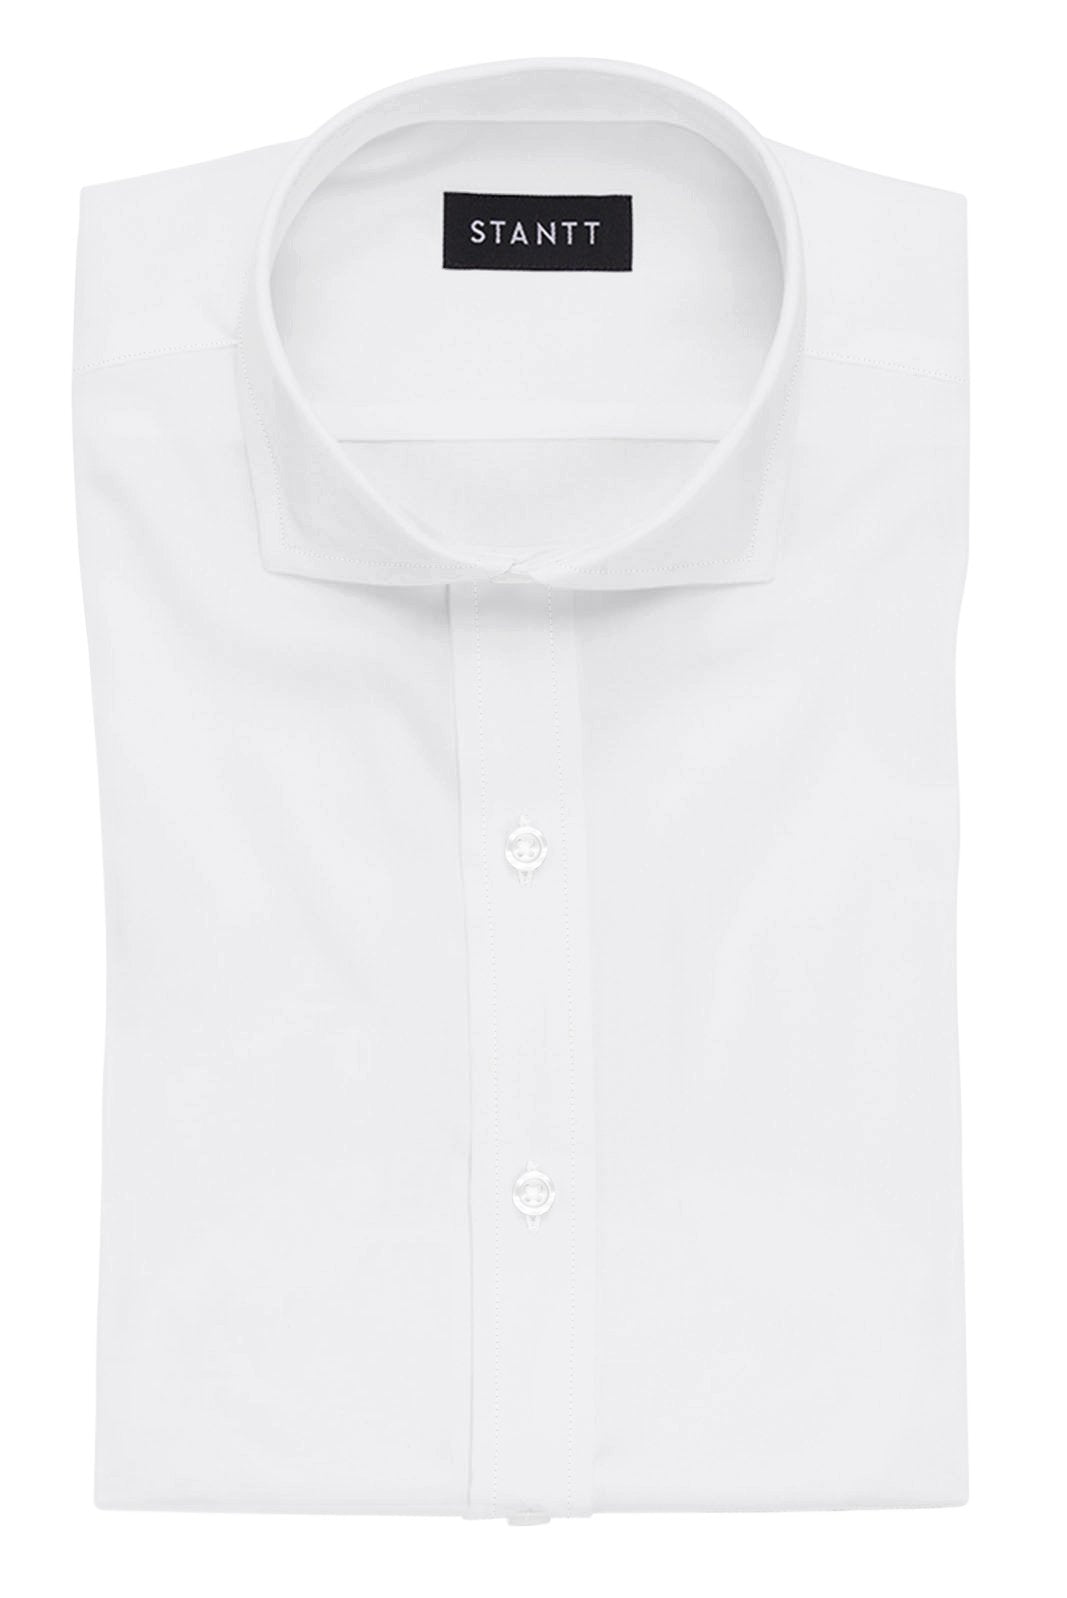 White Pinpoint Oxford: Cutaway Collar, French Cuff